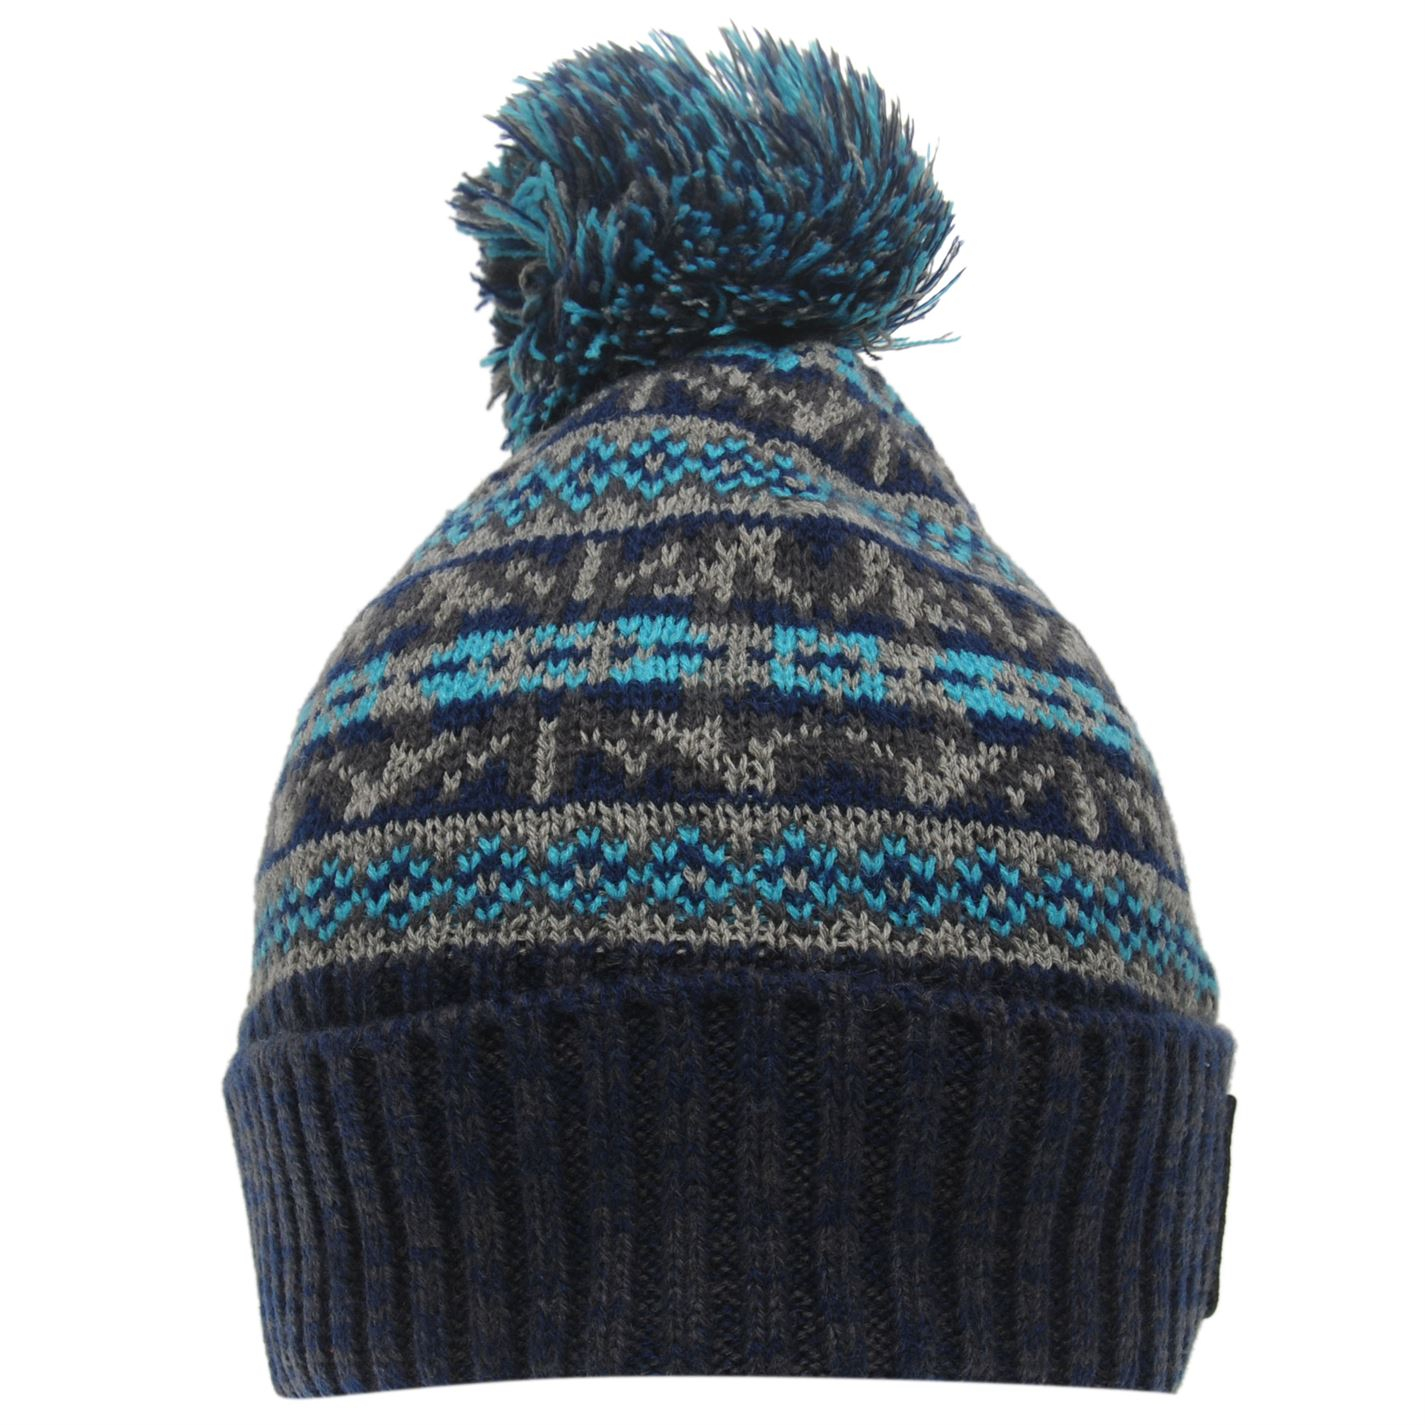 Knitting Pattern Bobble Hat Details About Soulcal Mens Dogoda Bobble Hat Pattern Winter